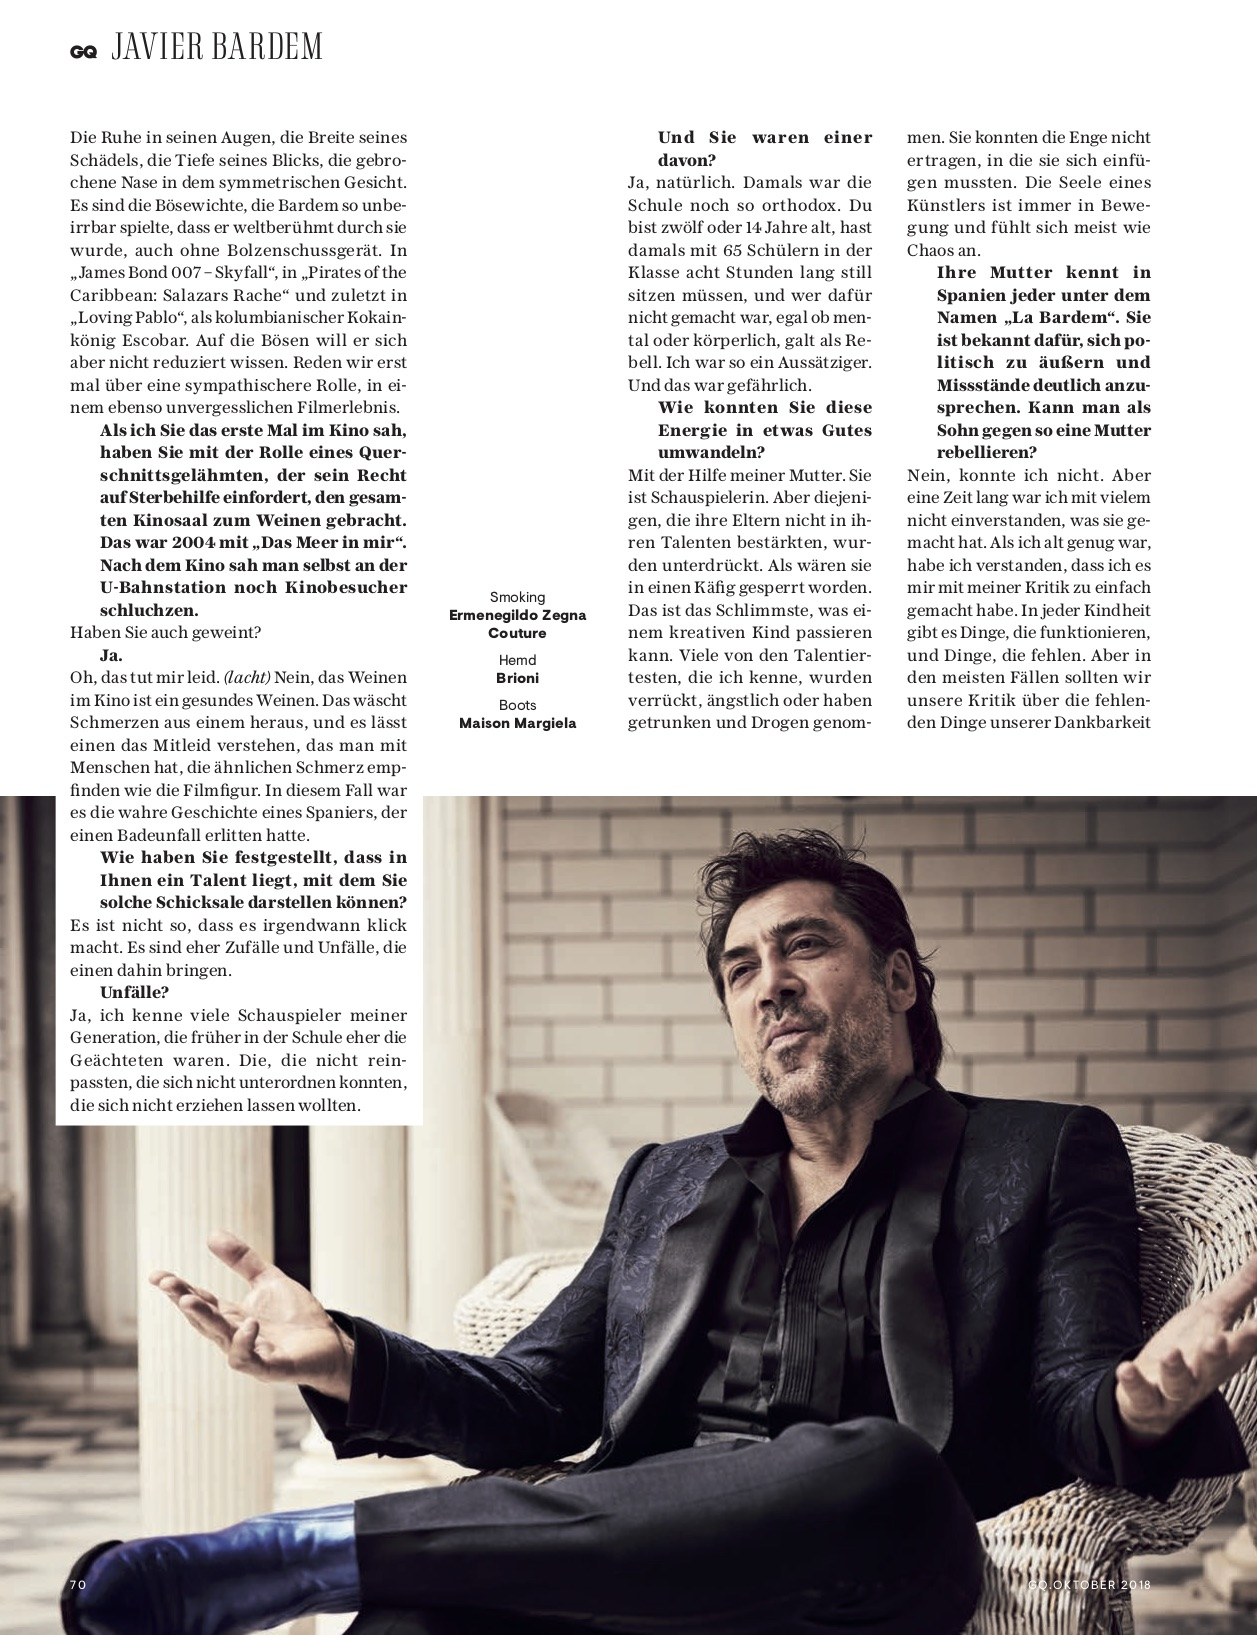 GQ with Javier Bardem 6 by Claudia ENGLMANN